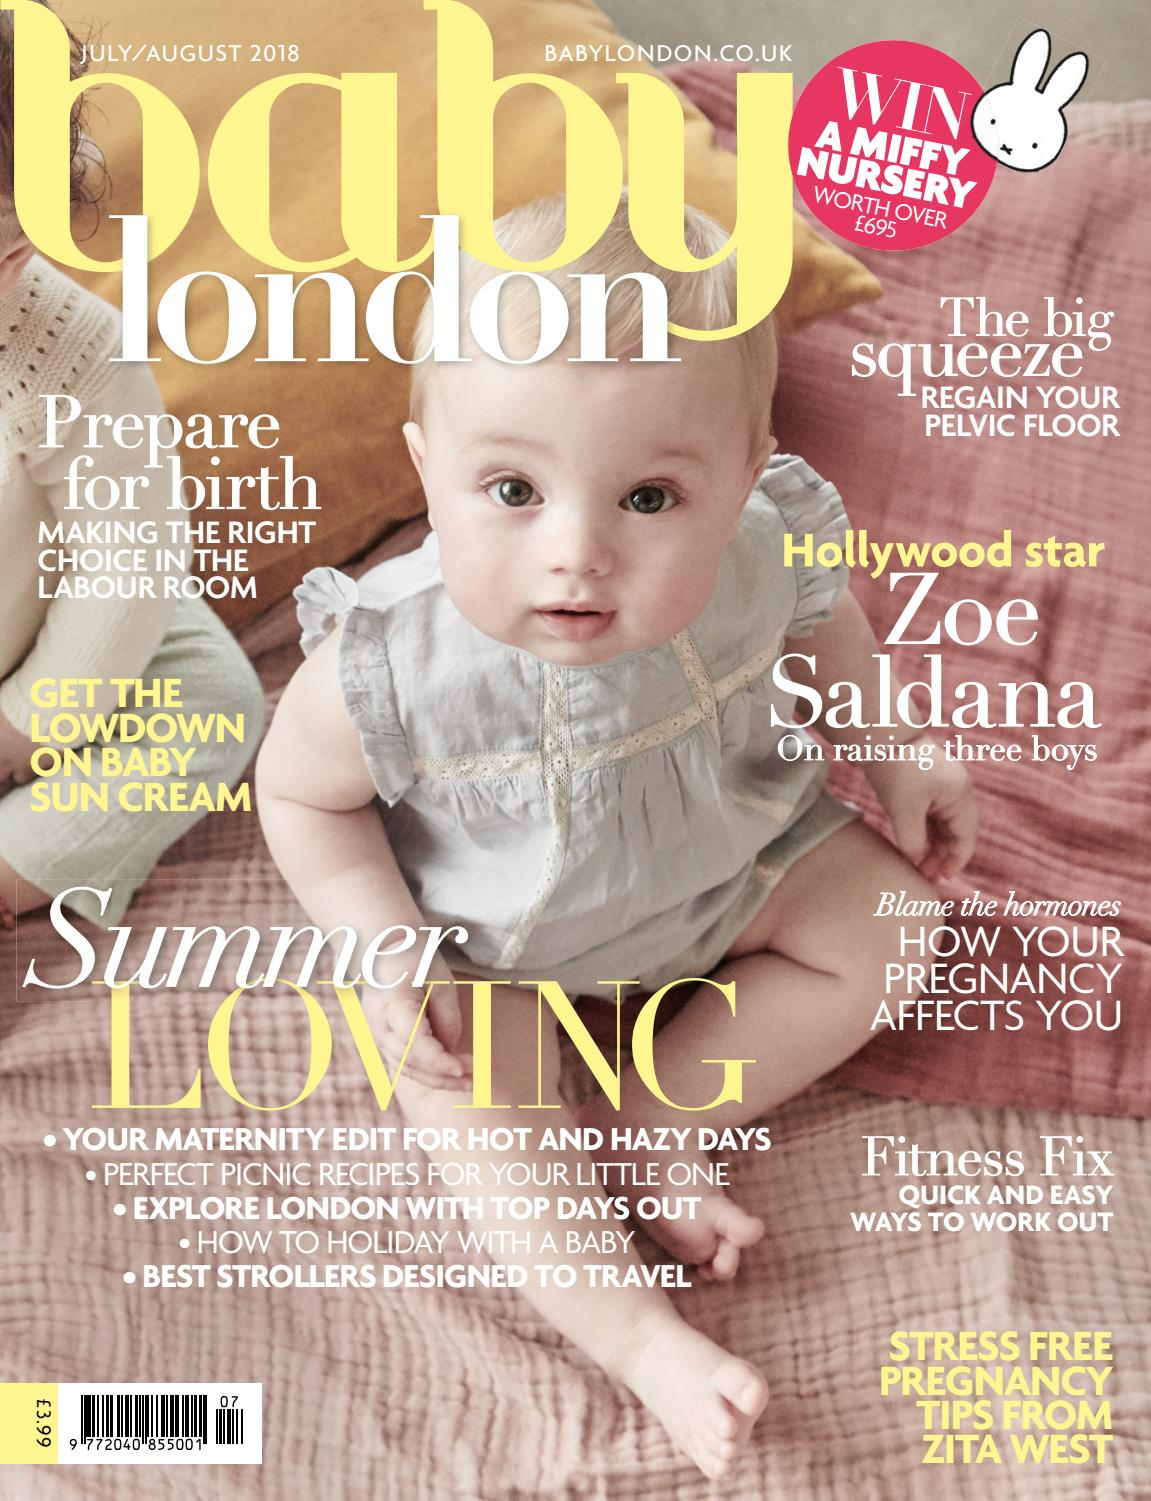 dc81a6ef Baby London July/August 2018 by The Chelsea Magazine Company - issuu